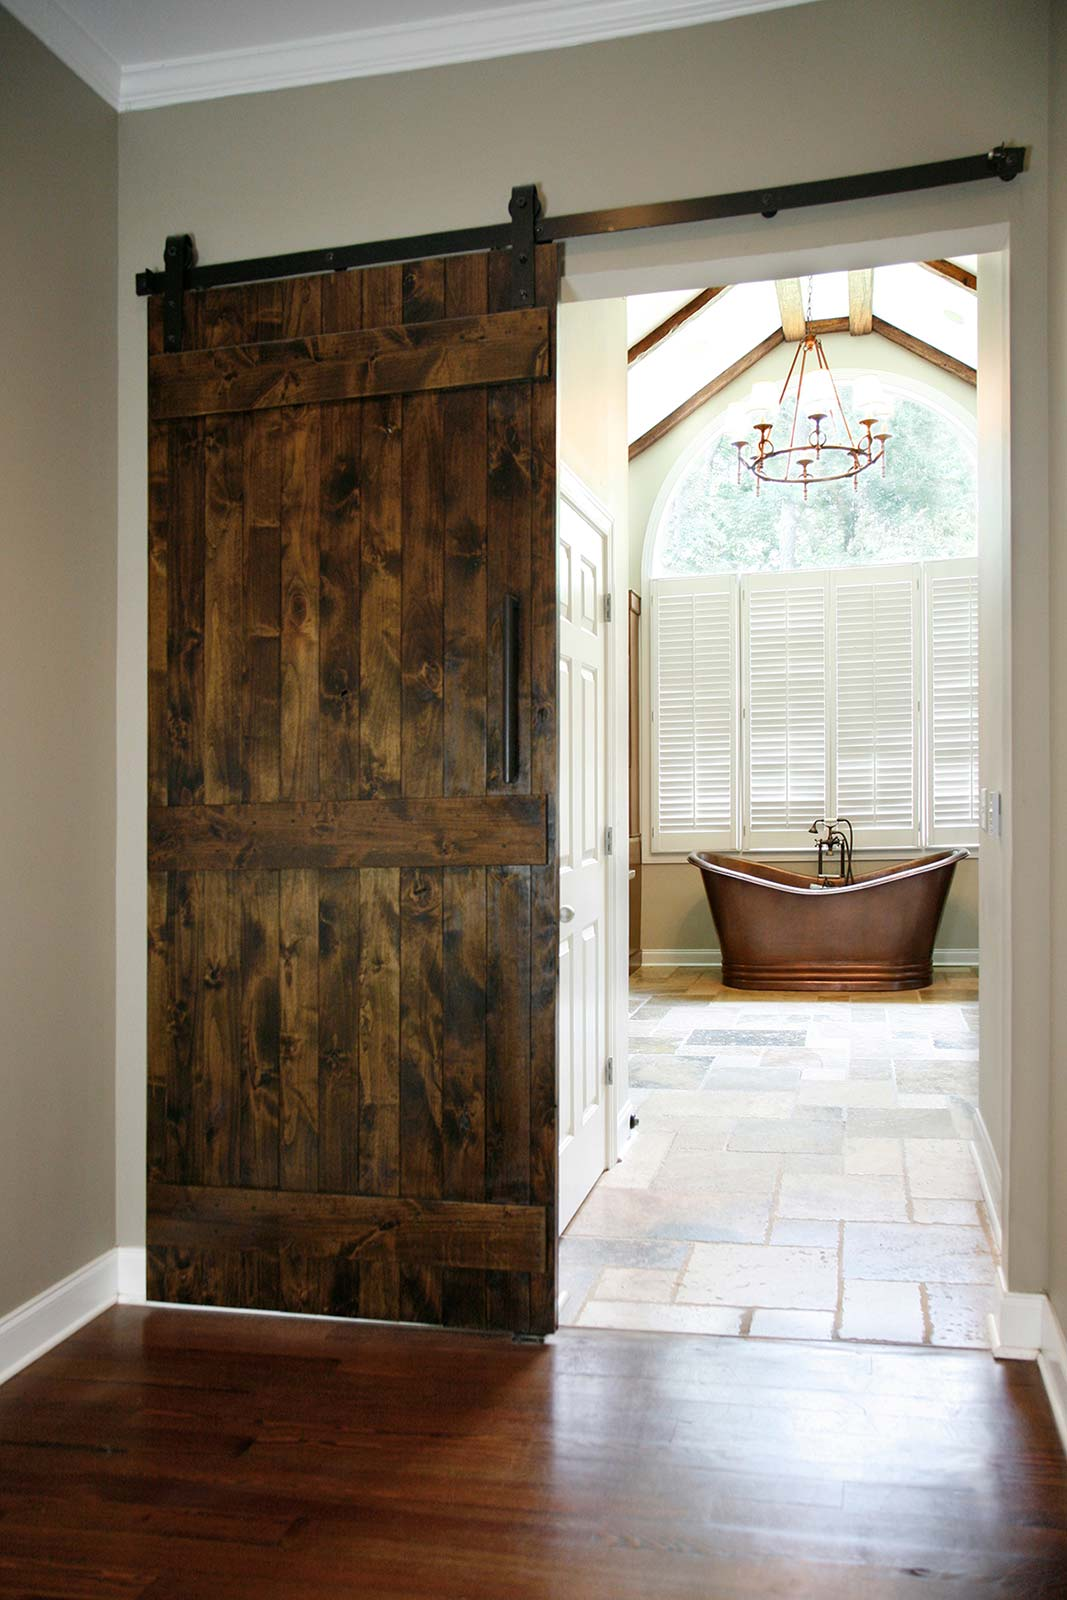 Closer view of barndoor style doors leading to bathroom